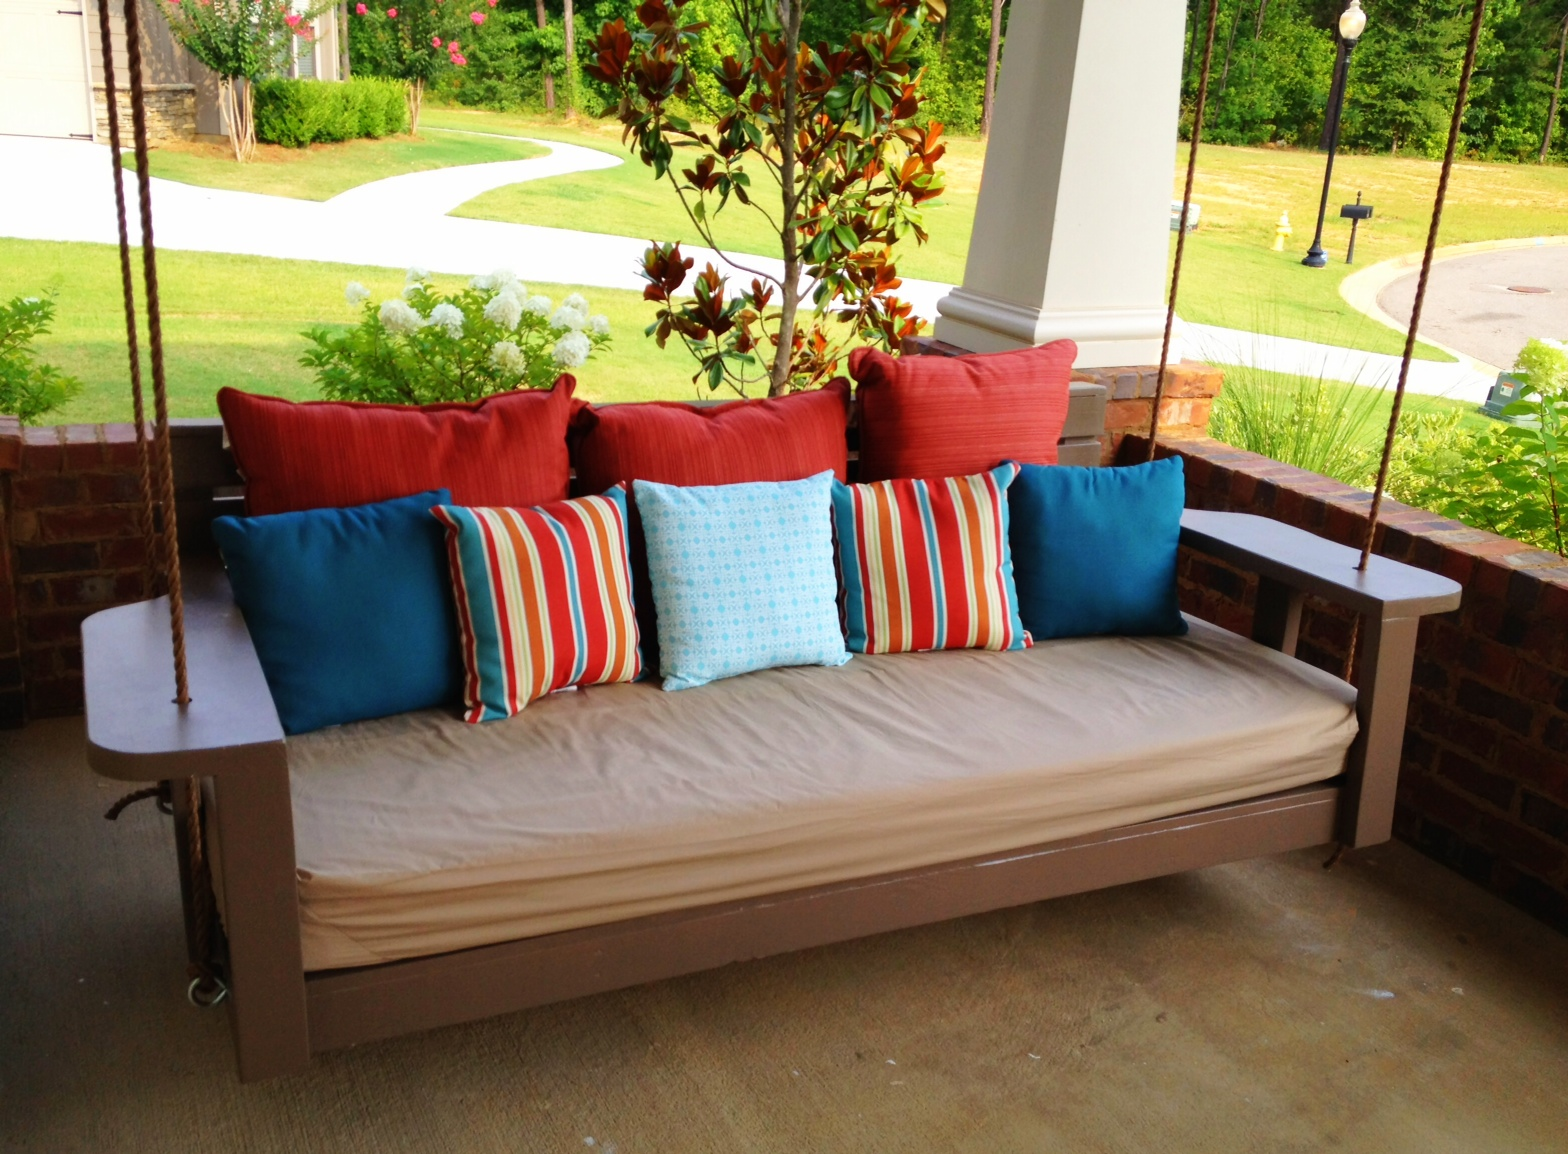 A chestnut brown swing with multicolored cushions